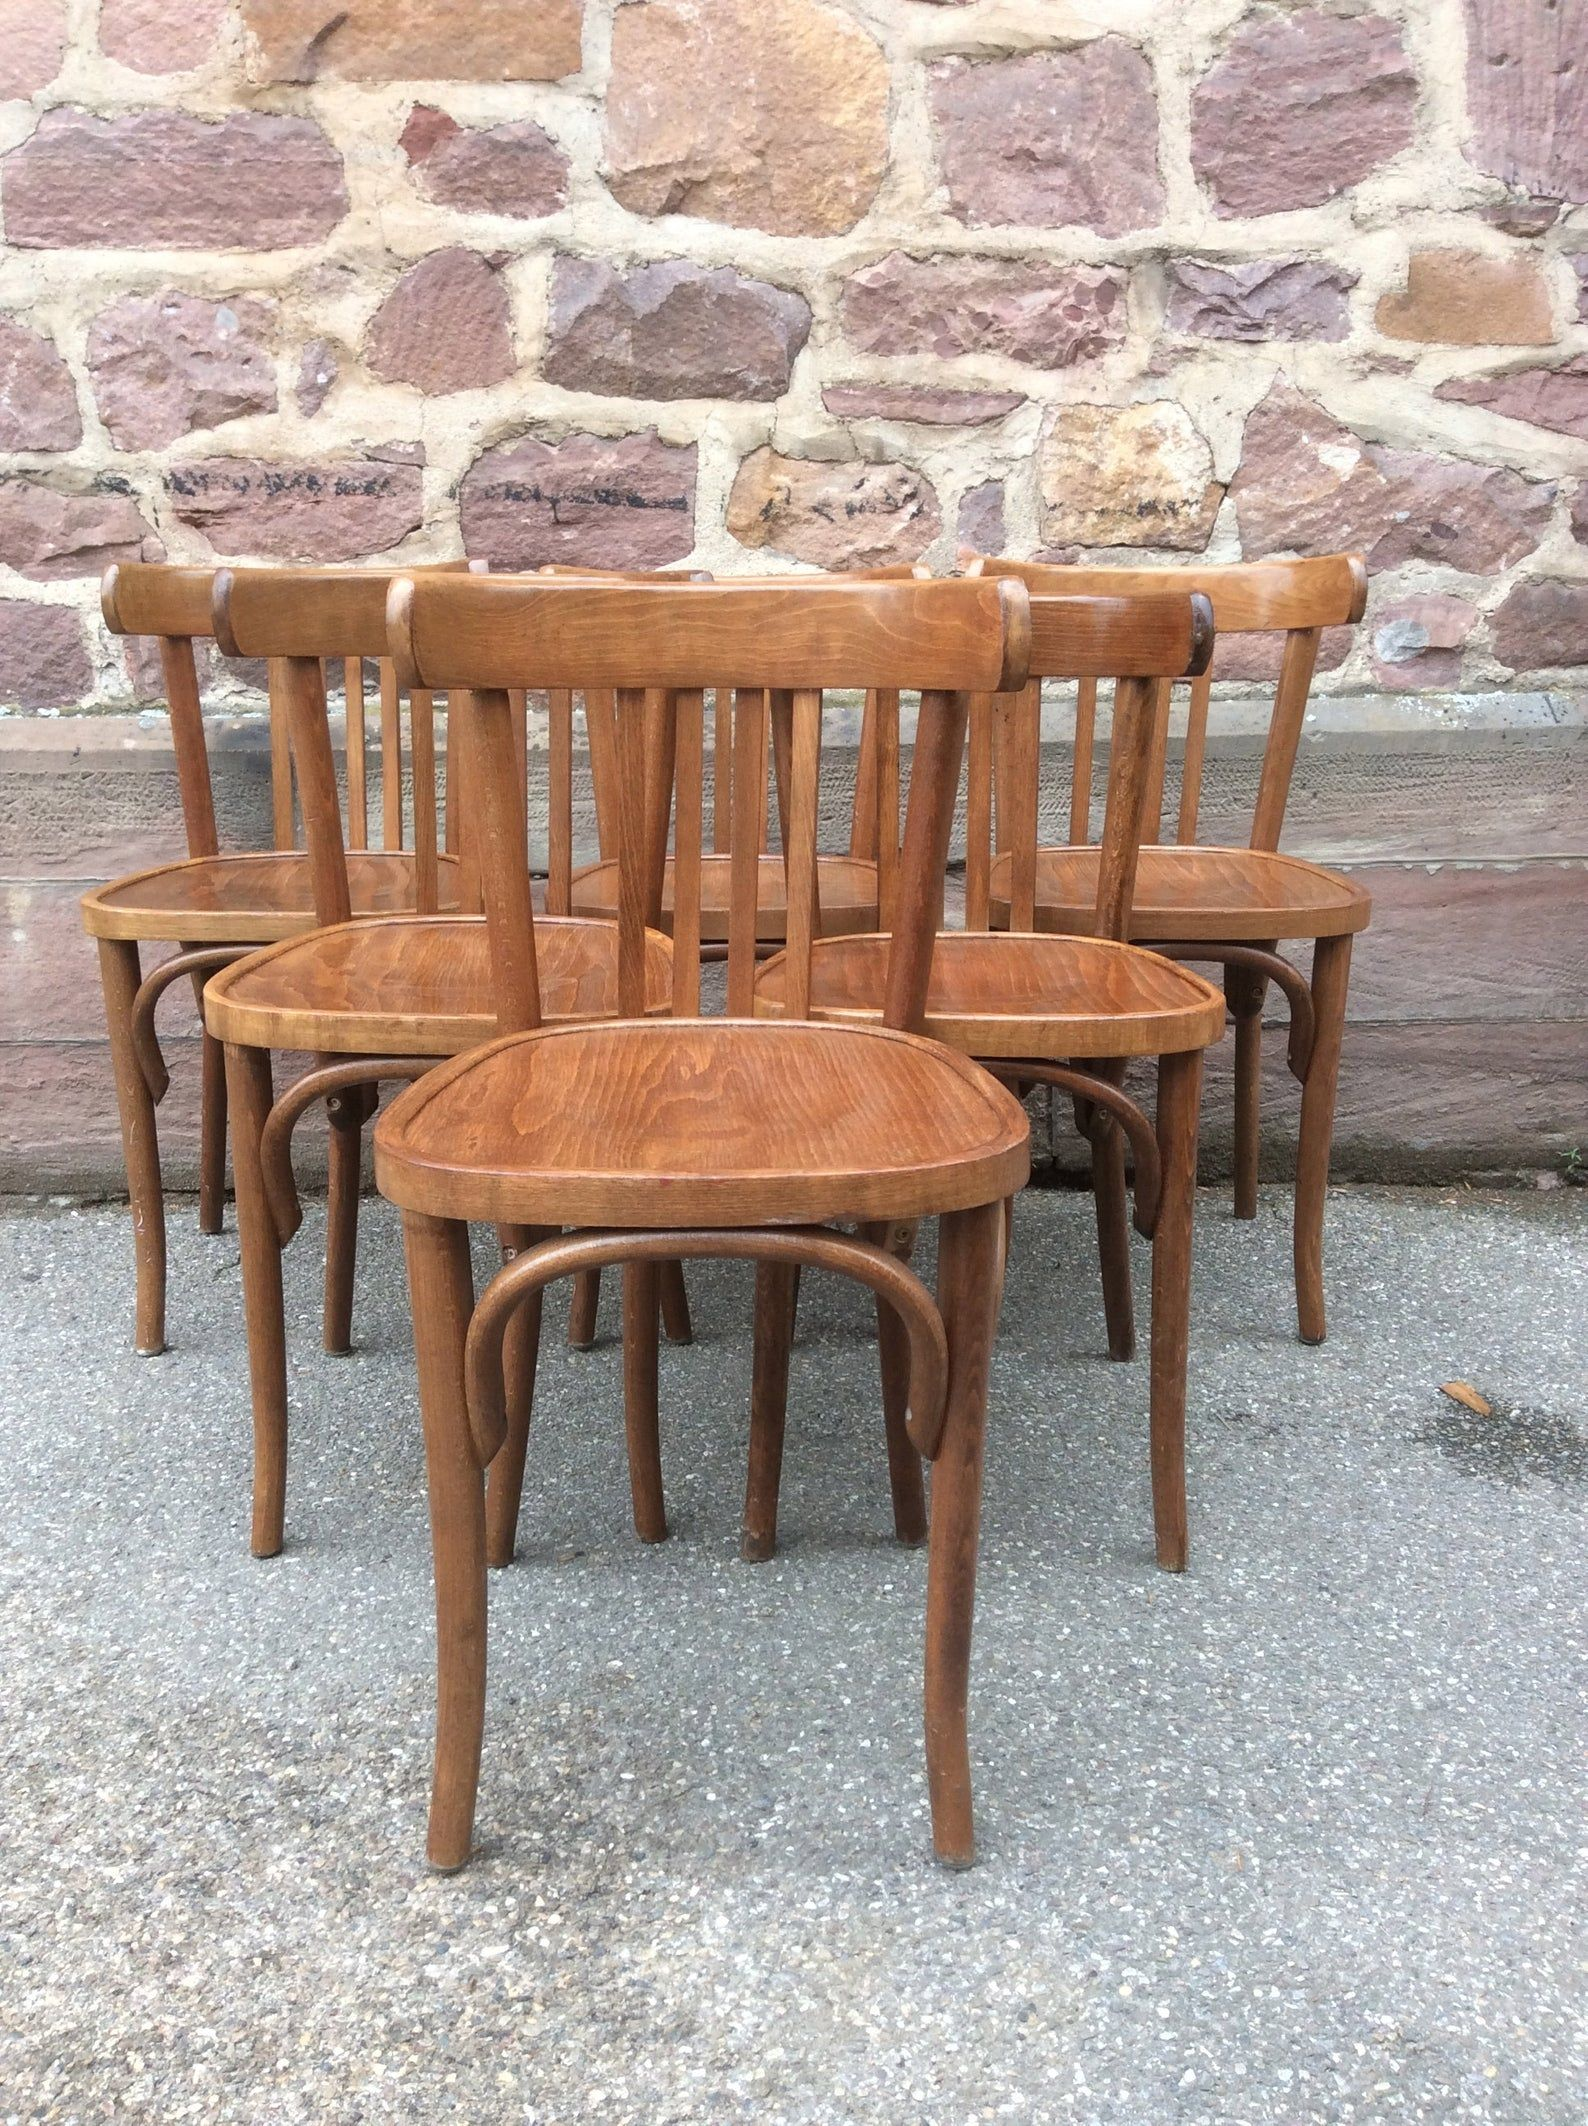 6 Chairs Bistrot Restaurant Vintage French Bistro Chairs Etsy With Images French Bistro Chairs Bistro Chairs Bistro Furniture